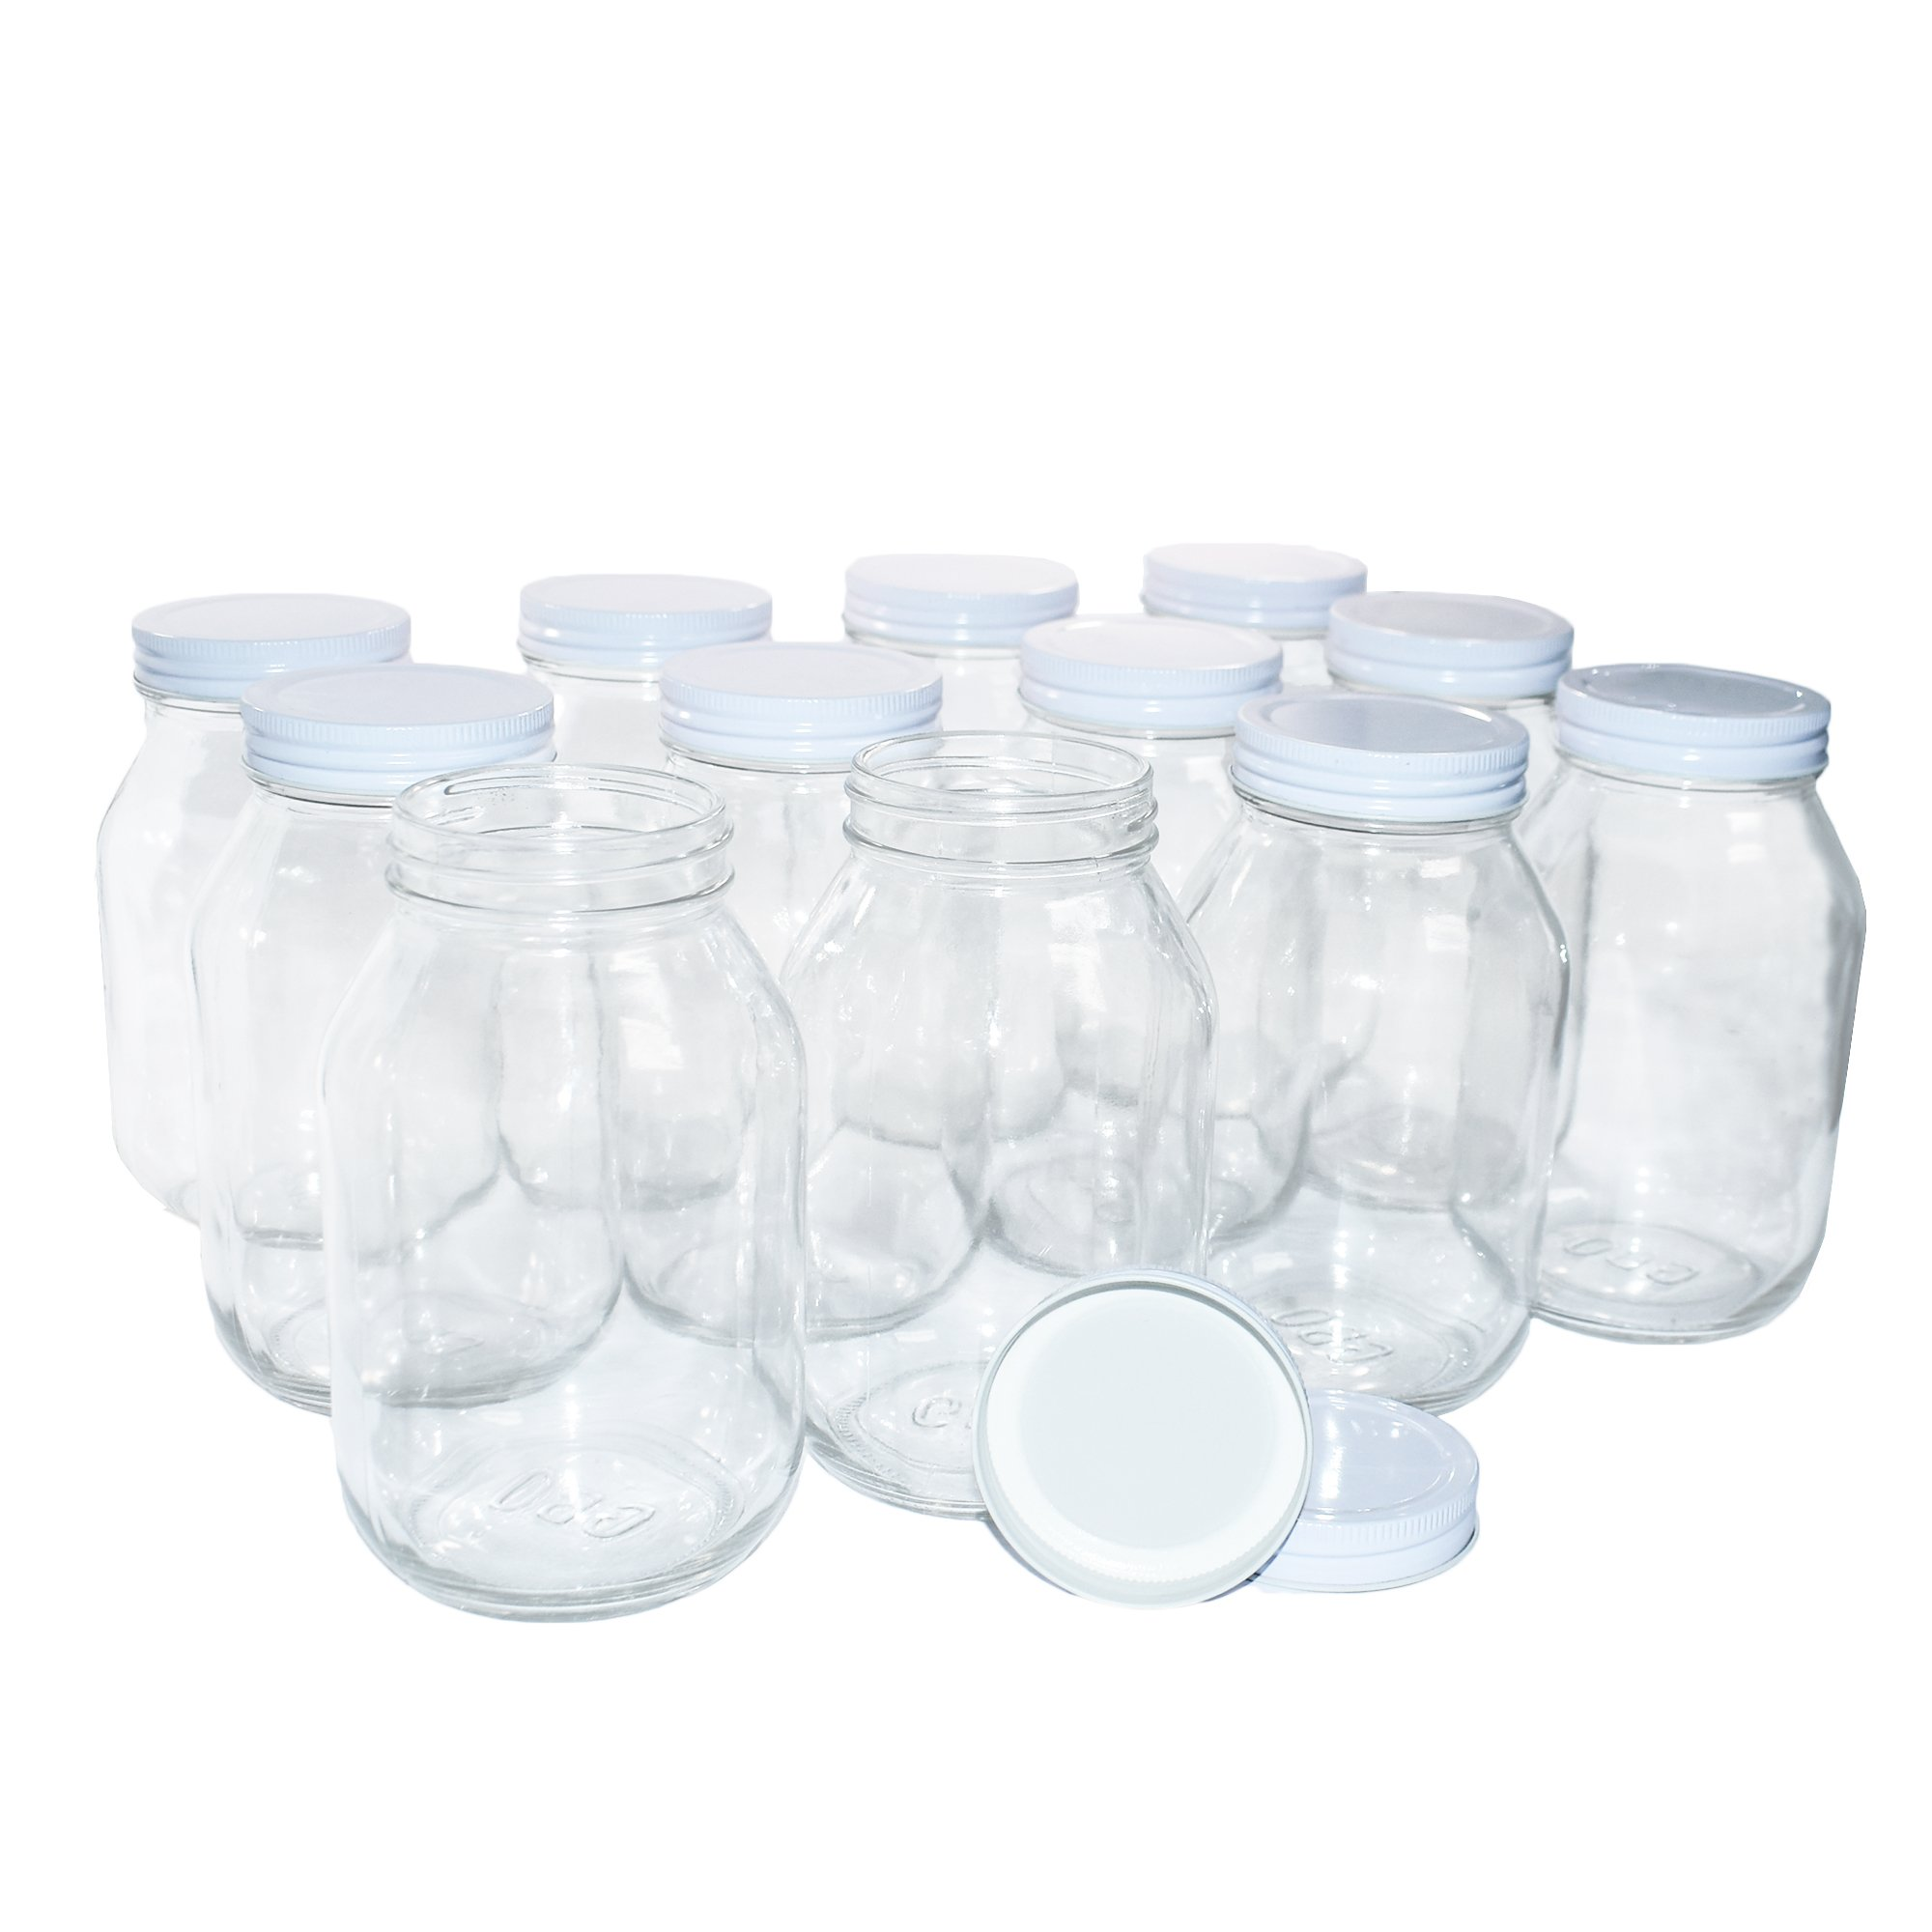 12 Pack Clear Glass Old-Fashioned Jars With Metal Lid (with seal) 32oz